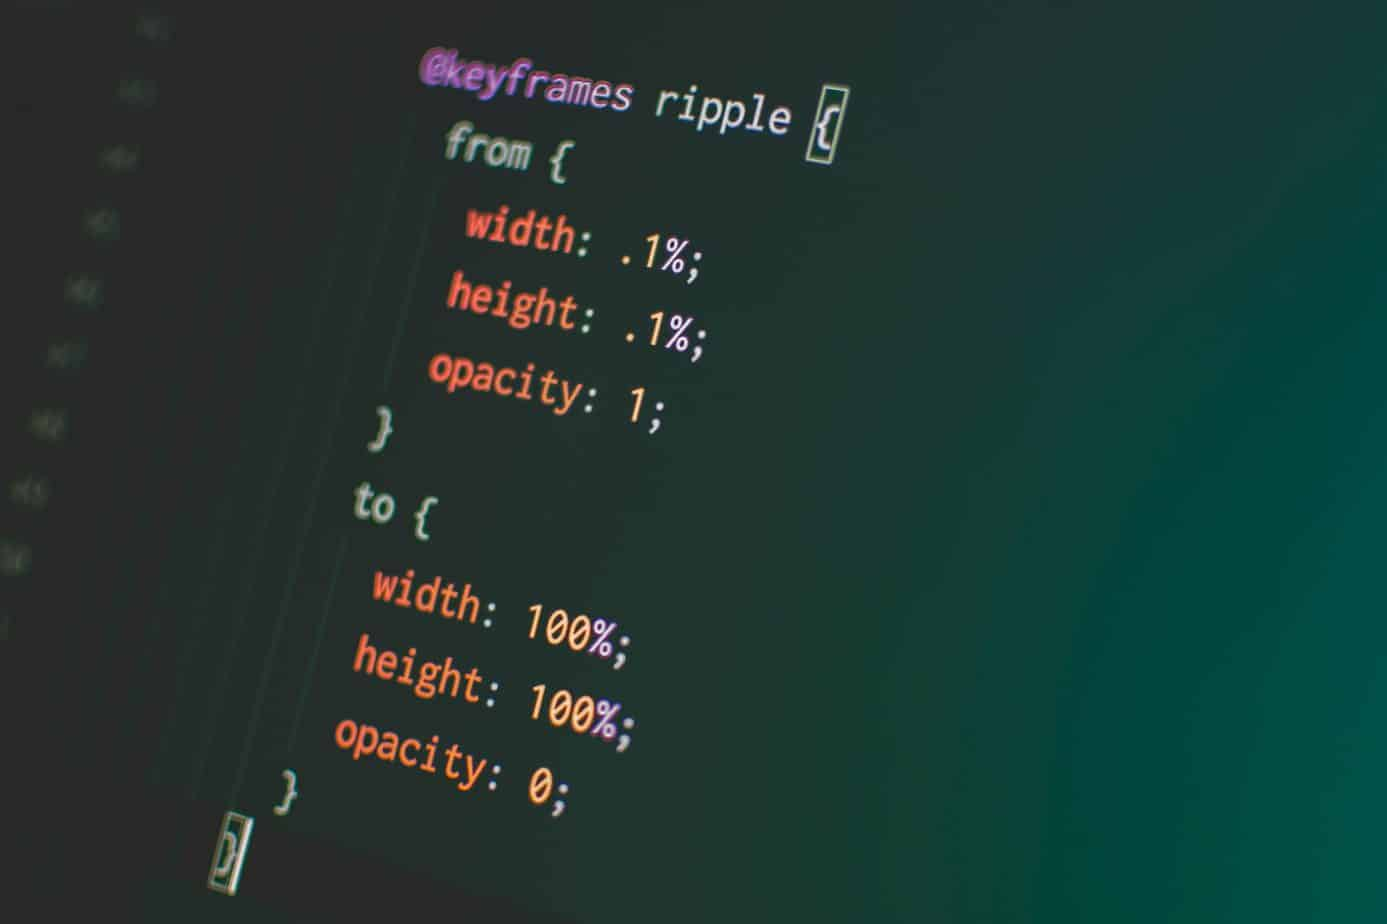 Some designers code for web or apps.